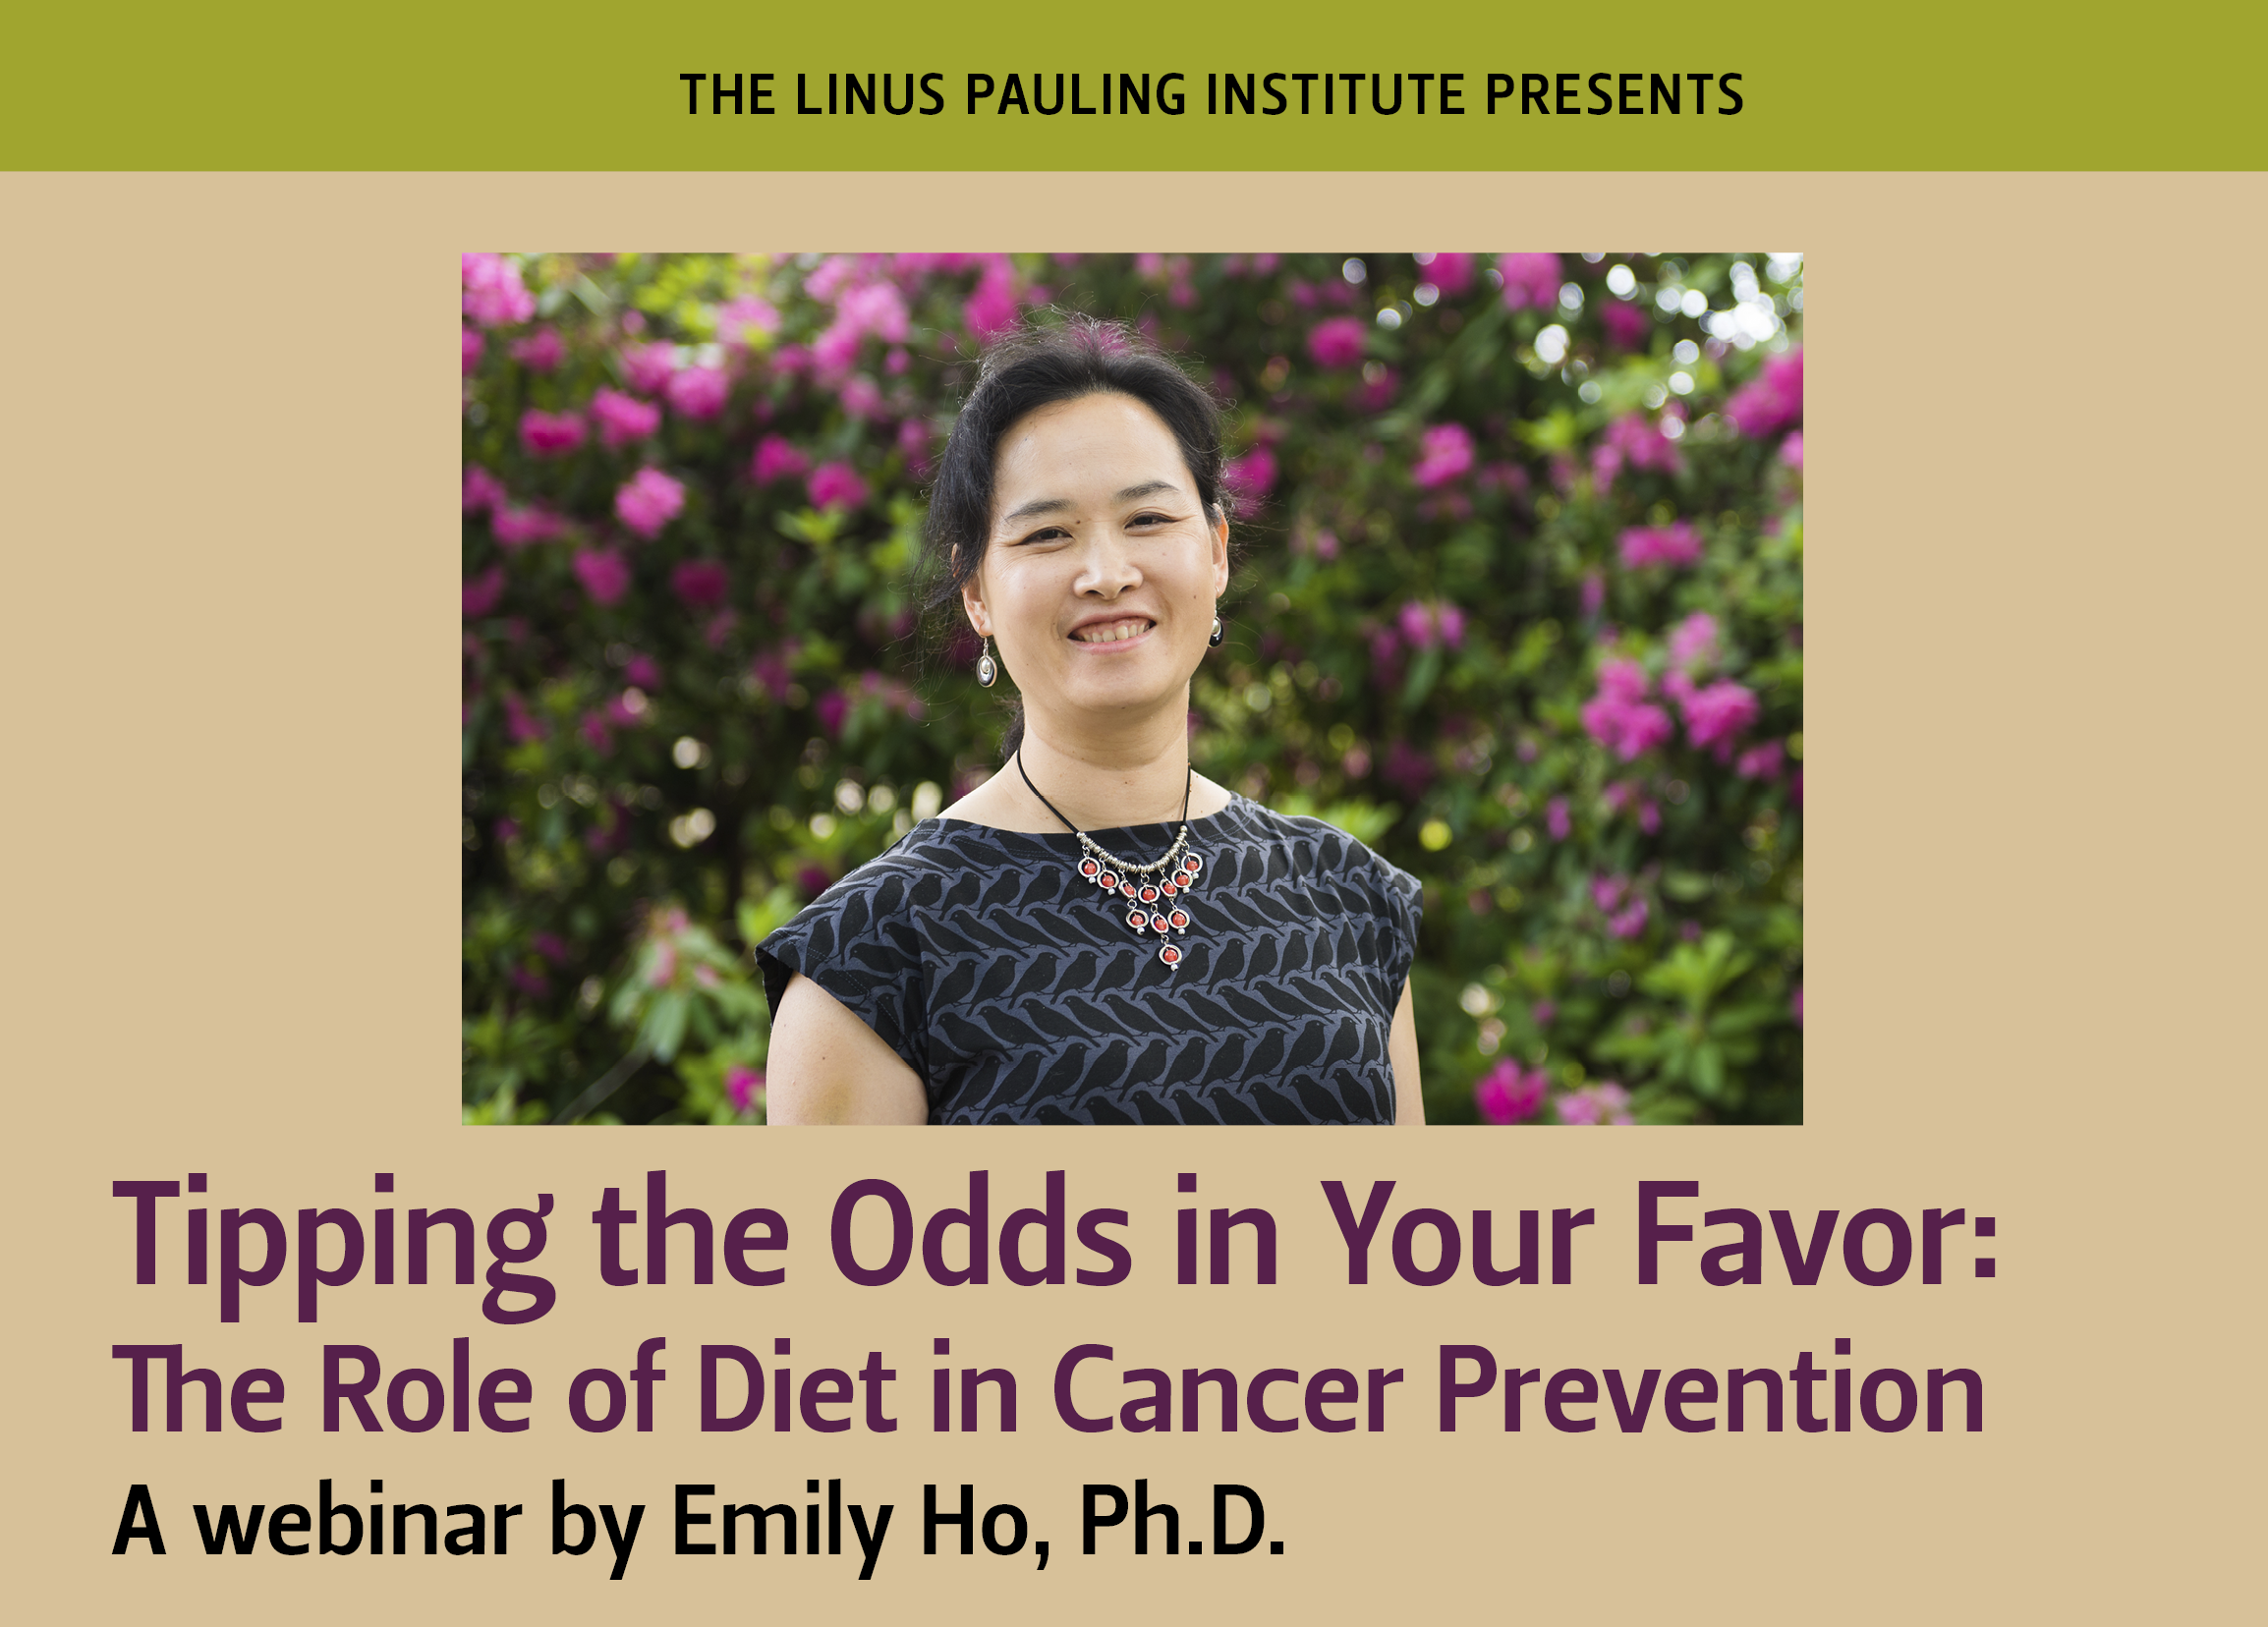 Tipping the Odds in Your Favor - An LPI Webinar